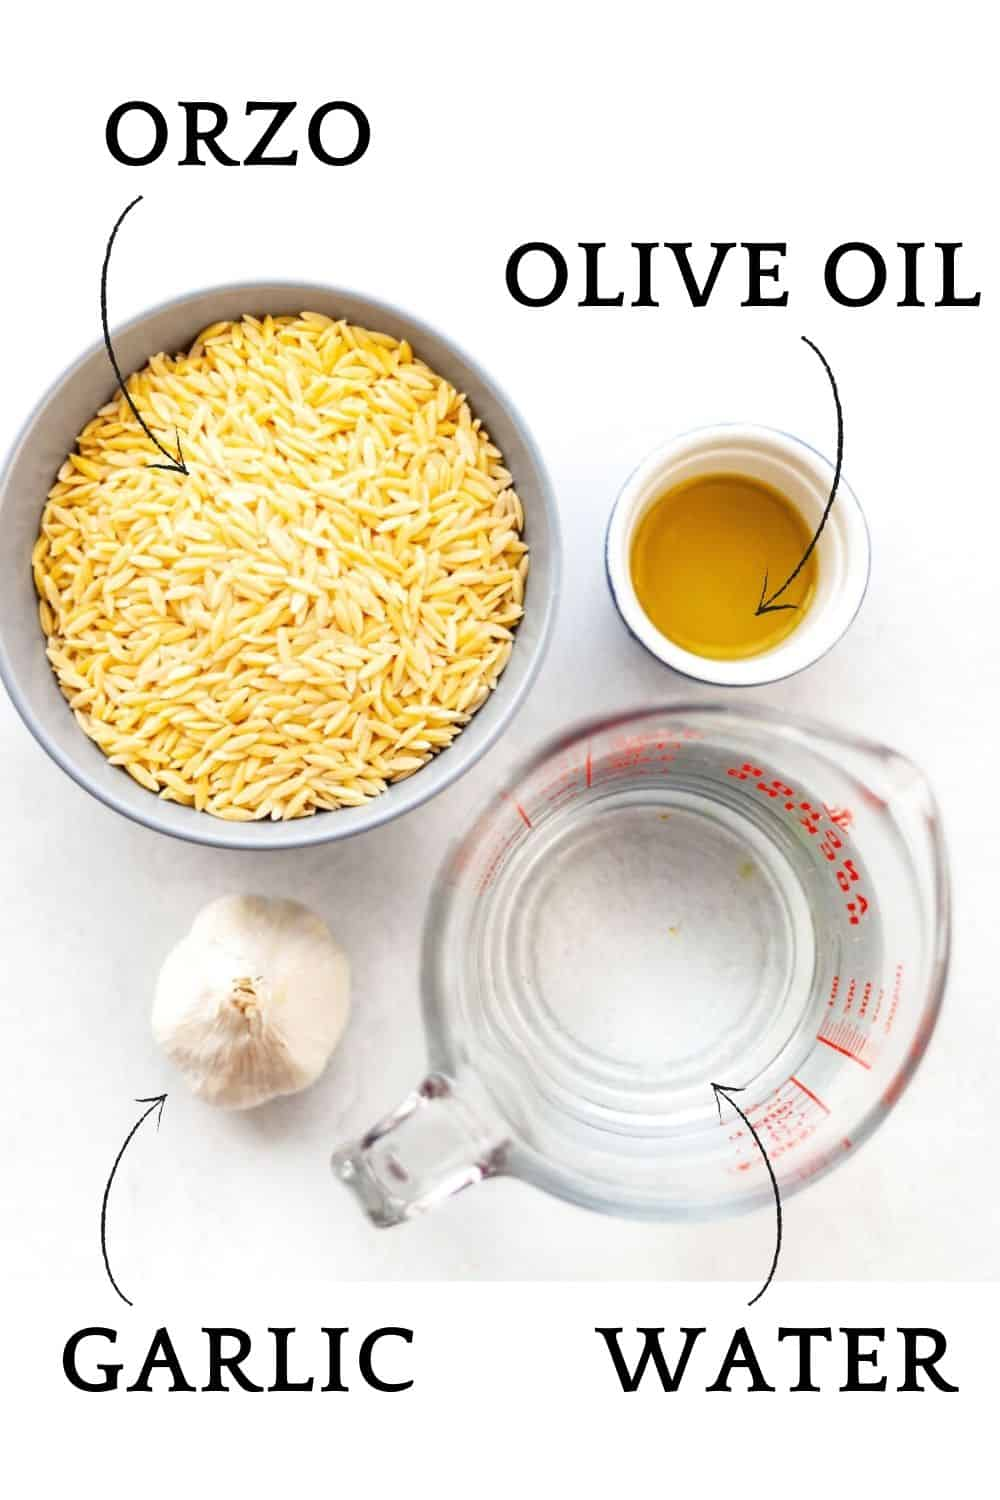 ingredients needed to cook orzo